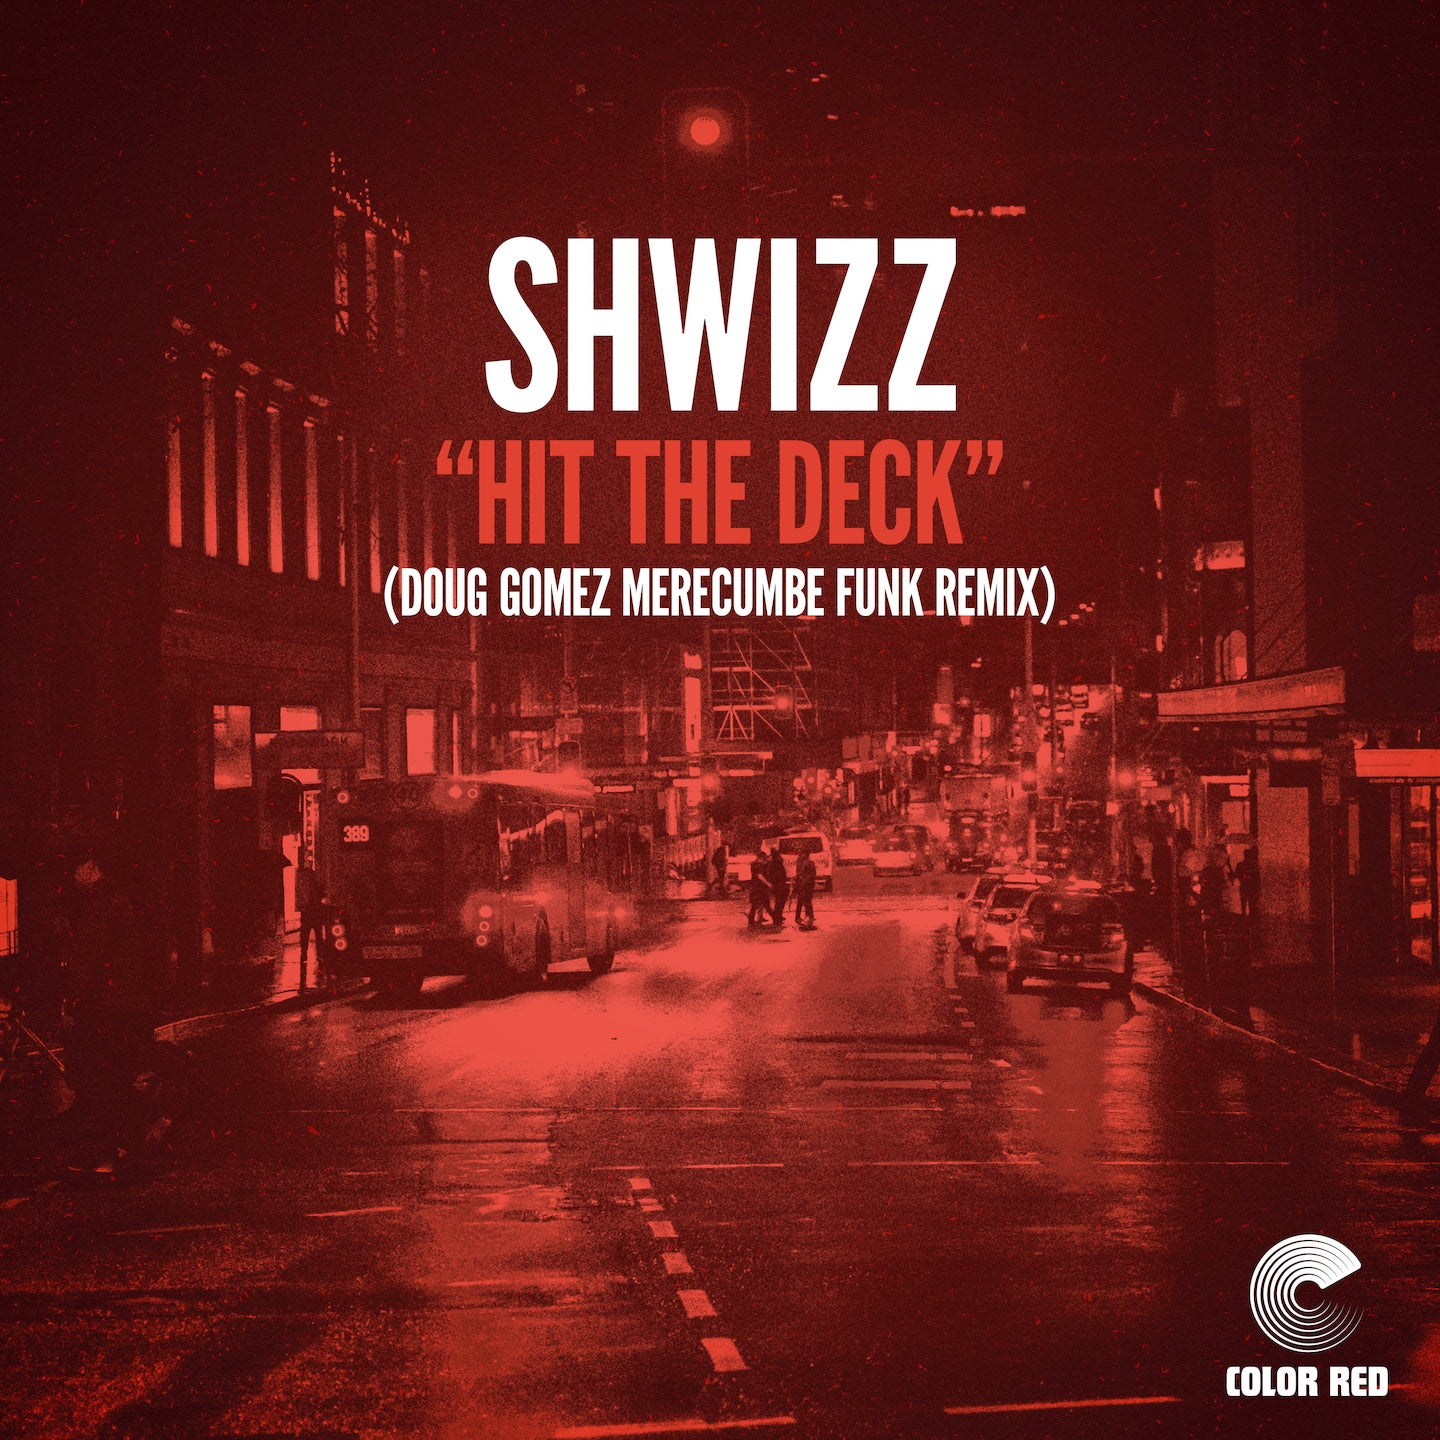 Hit the Deck (Doug Gómez Merecumbe Funk Remix)